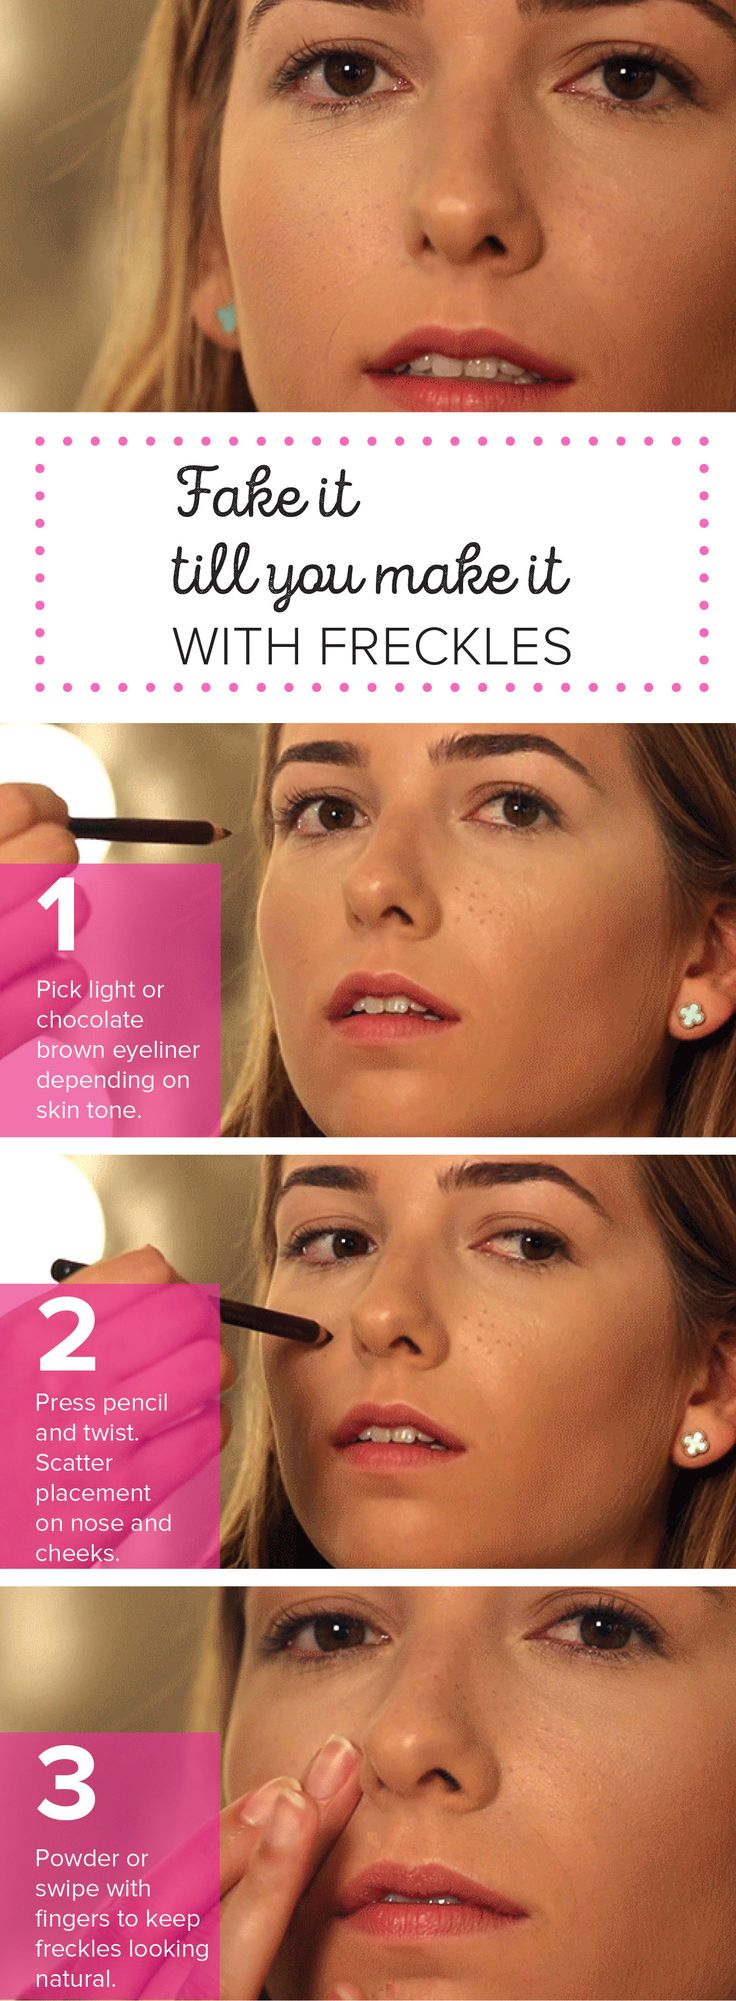 Get a freckled face with this hack for sporting fake freckles.